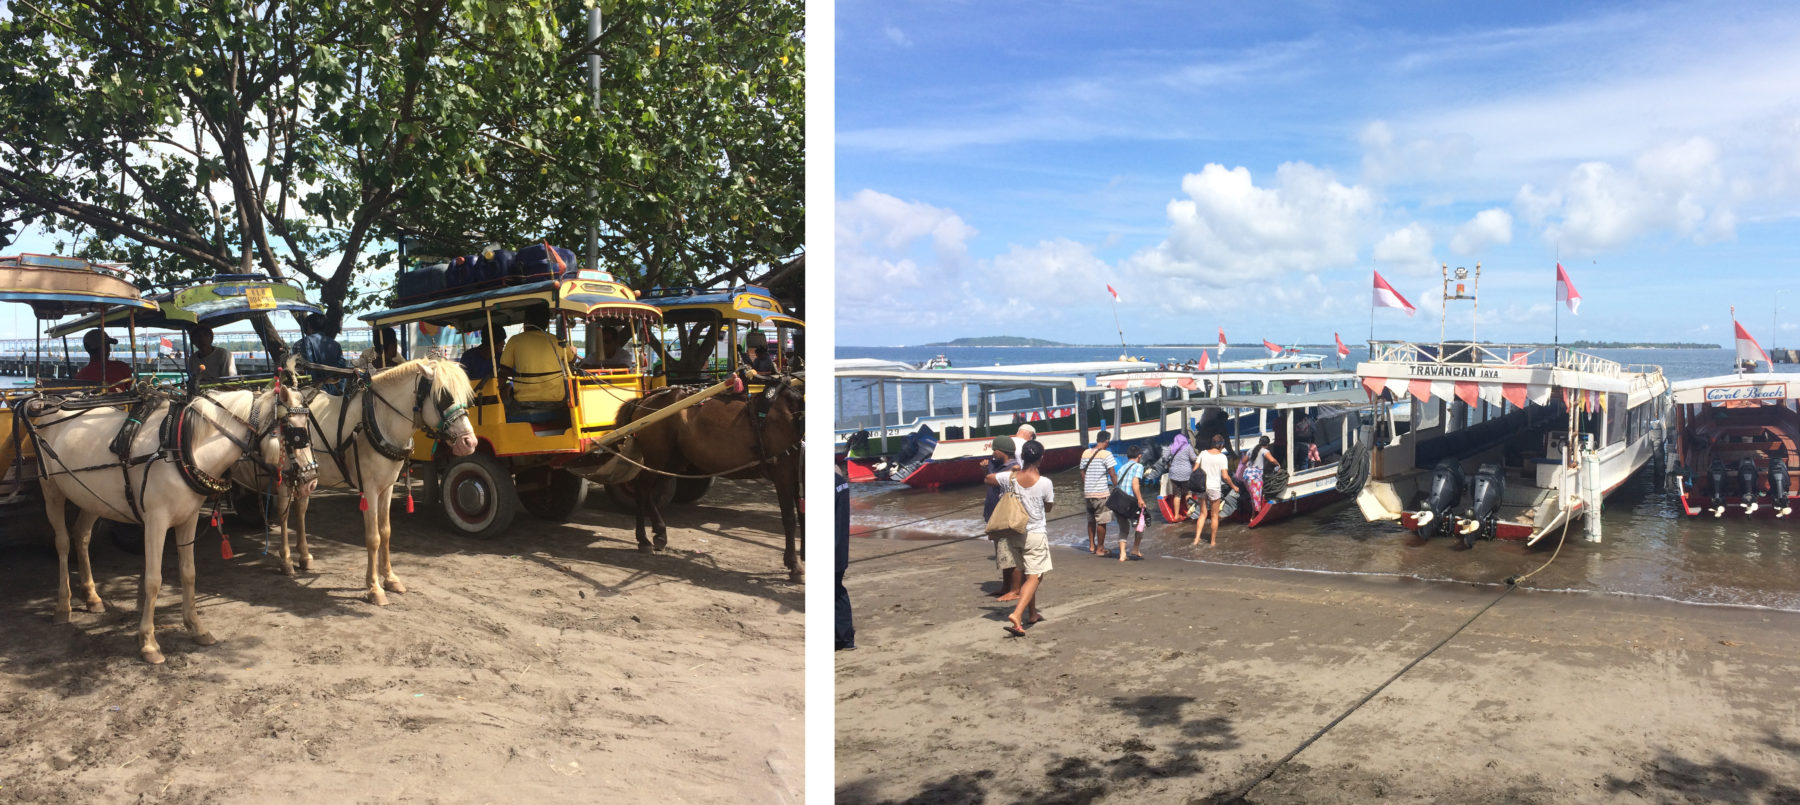 gili islands pier boat dont support animal cruelty